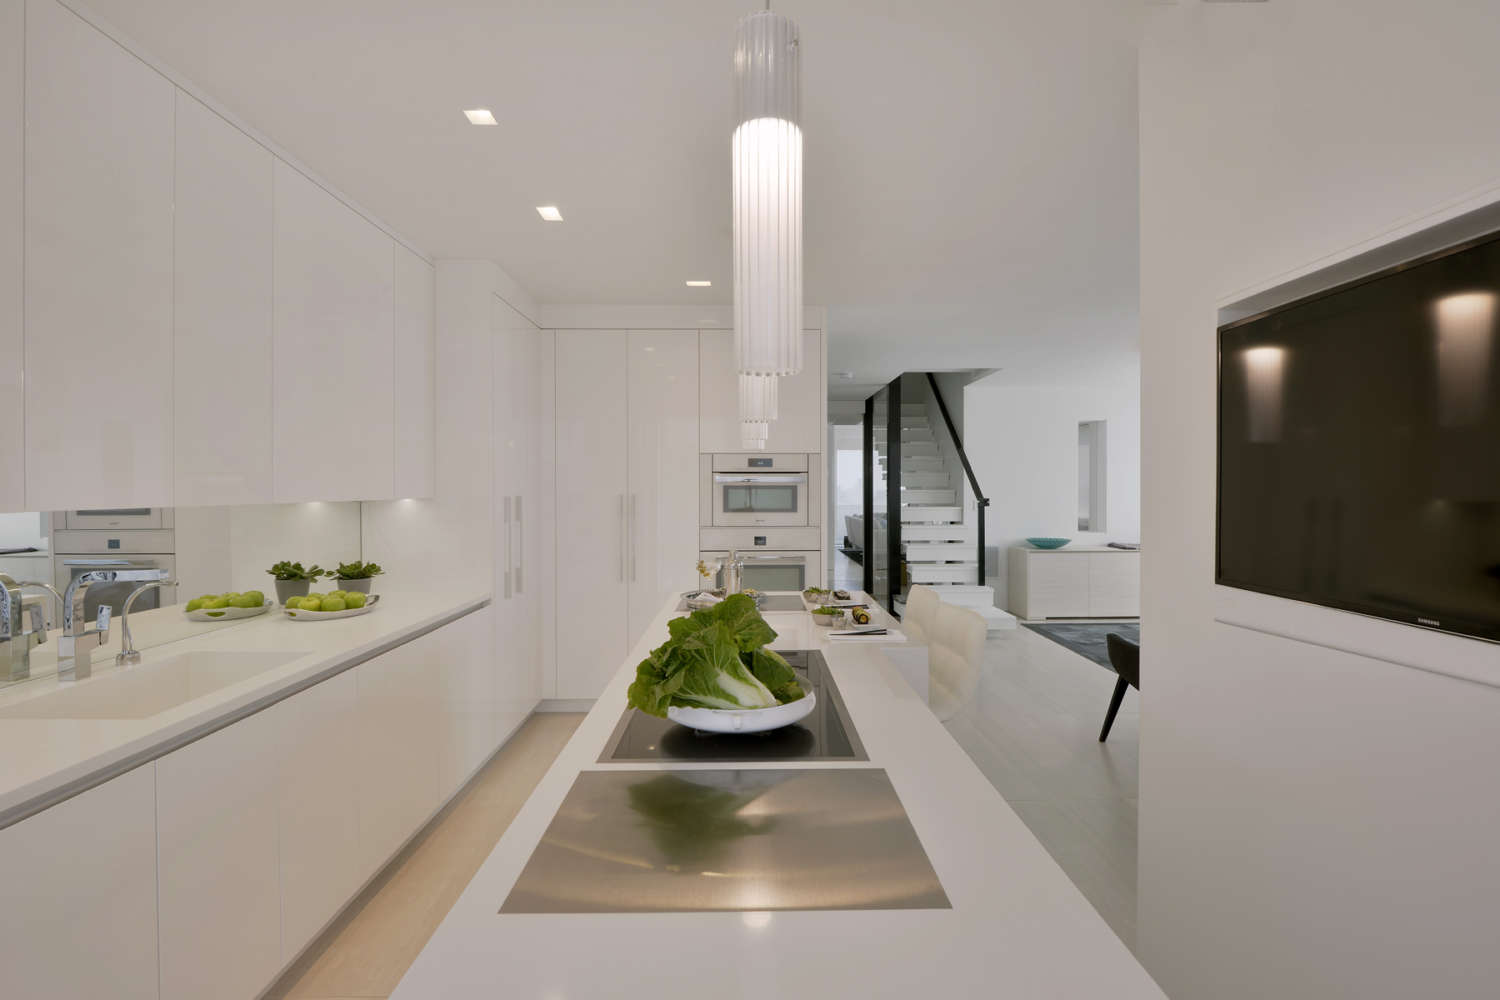 L-shaped all white contemporary kitchen features flat panel, frameless fully custom Artcraft Cabinetry in high gloss white with channel hardware and white quartz countertops. Design by Goran Savic of Bilotta Kitchens.